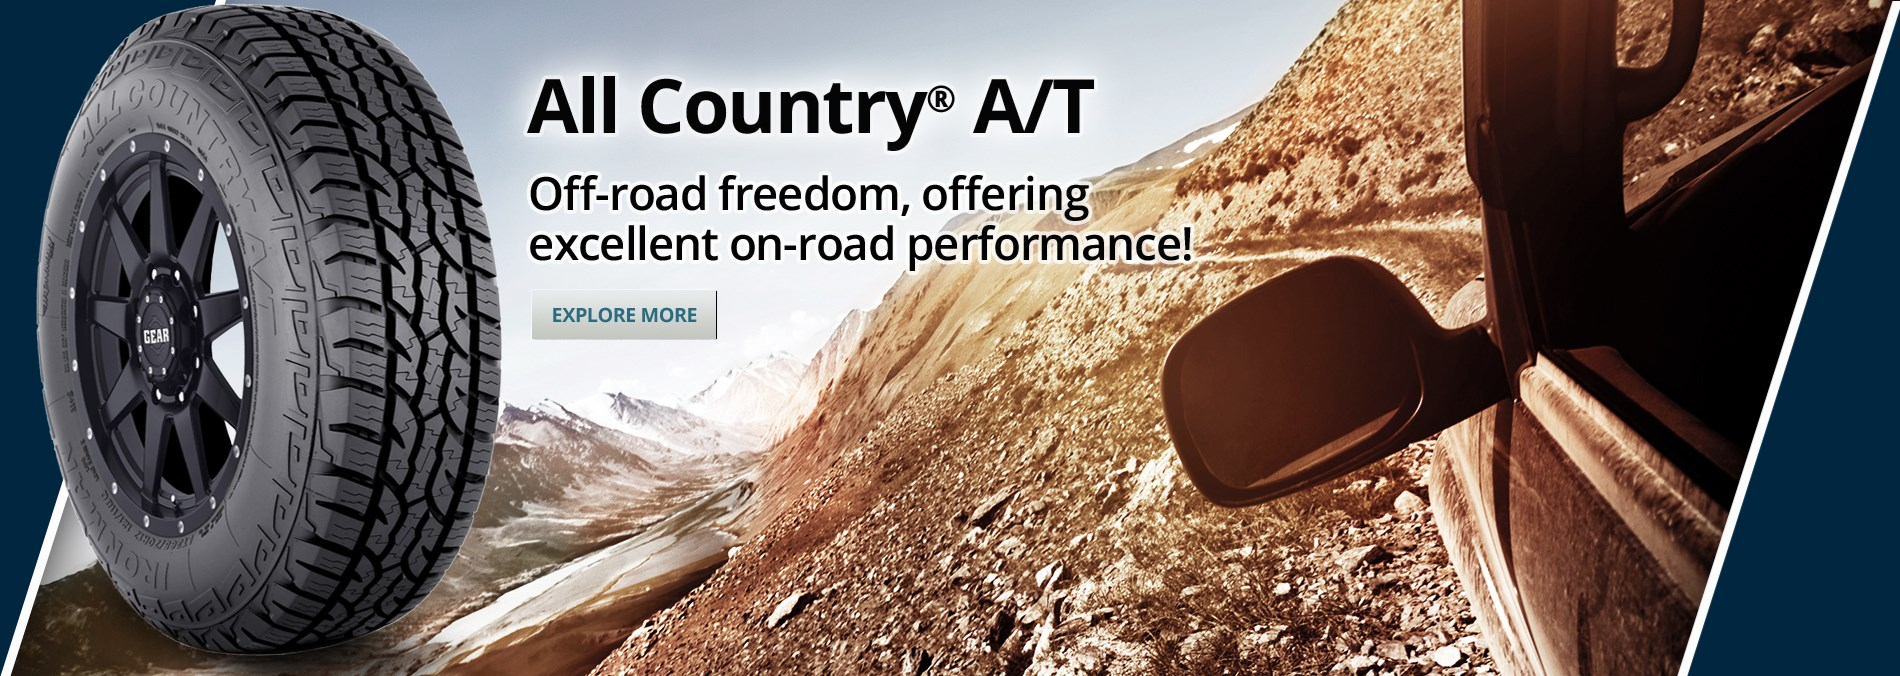 Hercules Tire All Country A/T